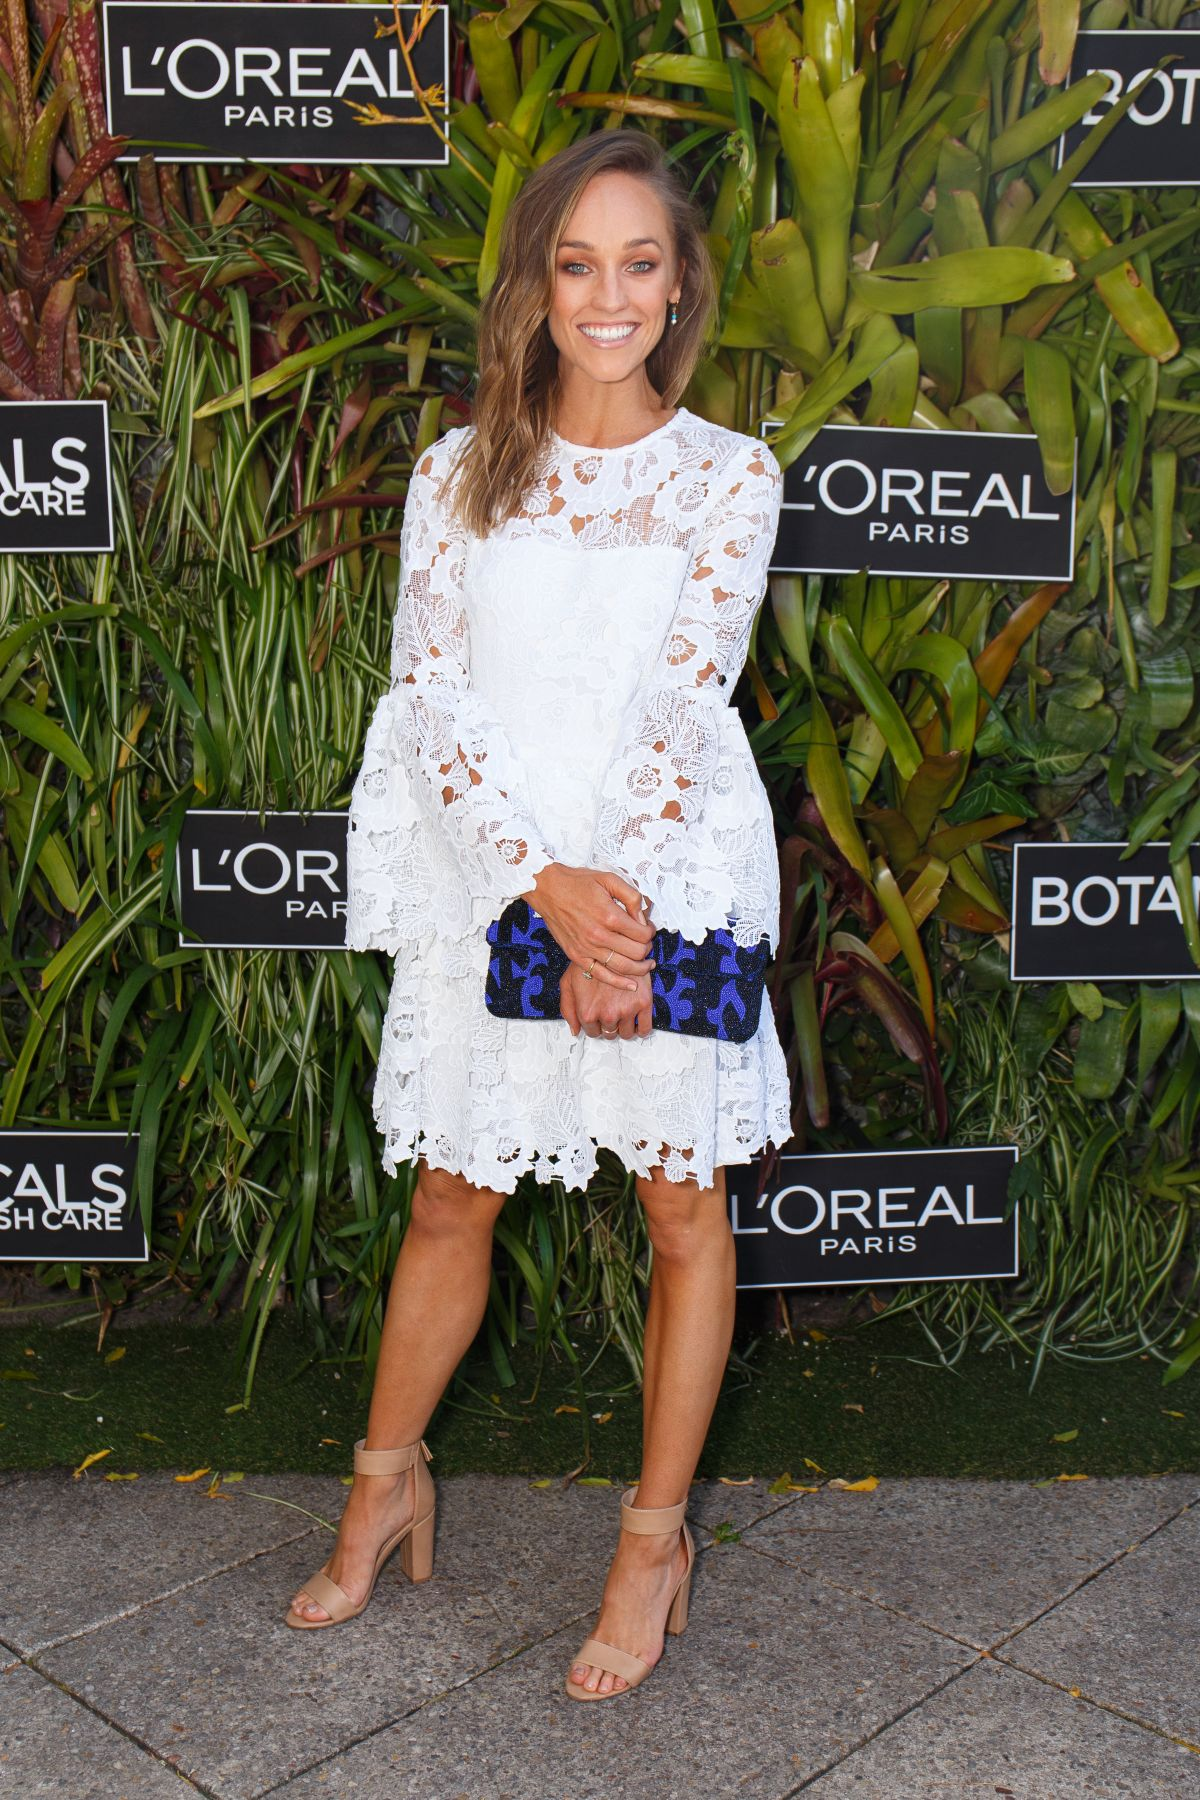 BROOKE LOCKETT at Botanicals Fresh Care Ambassador Launch in Sydney 04/19/2017